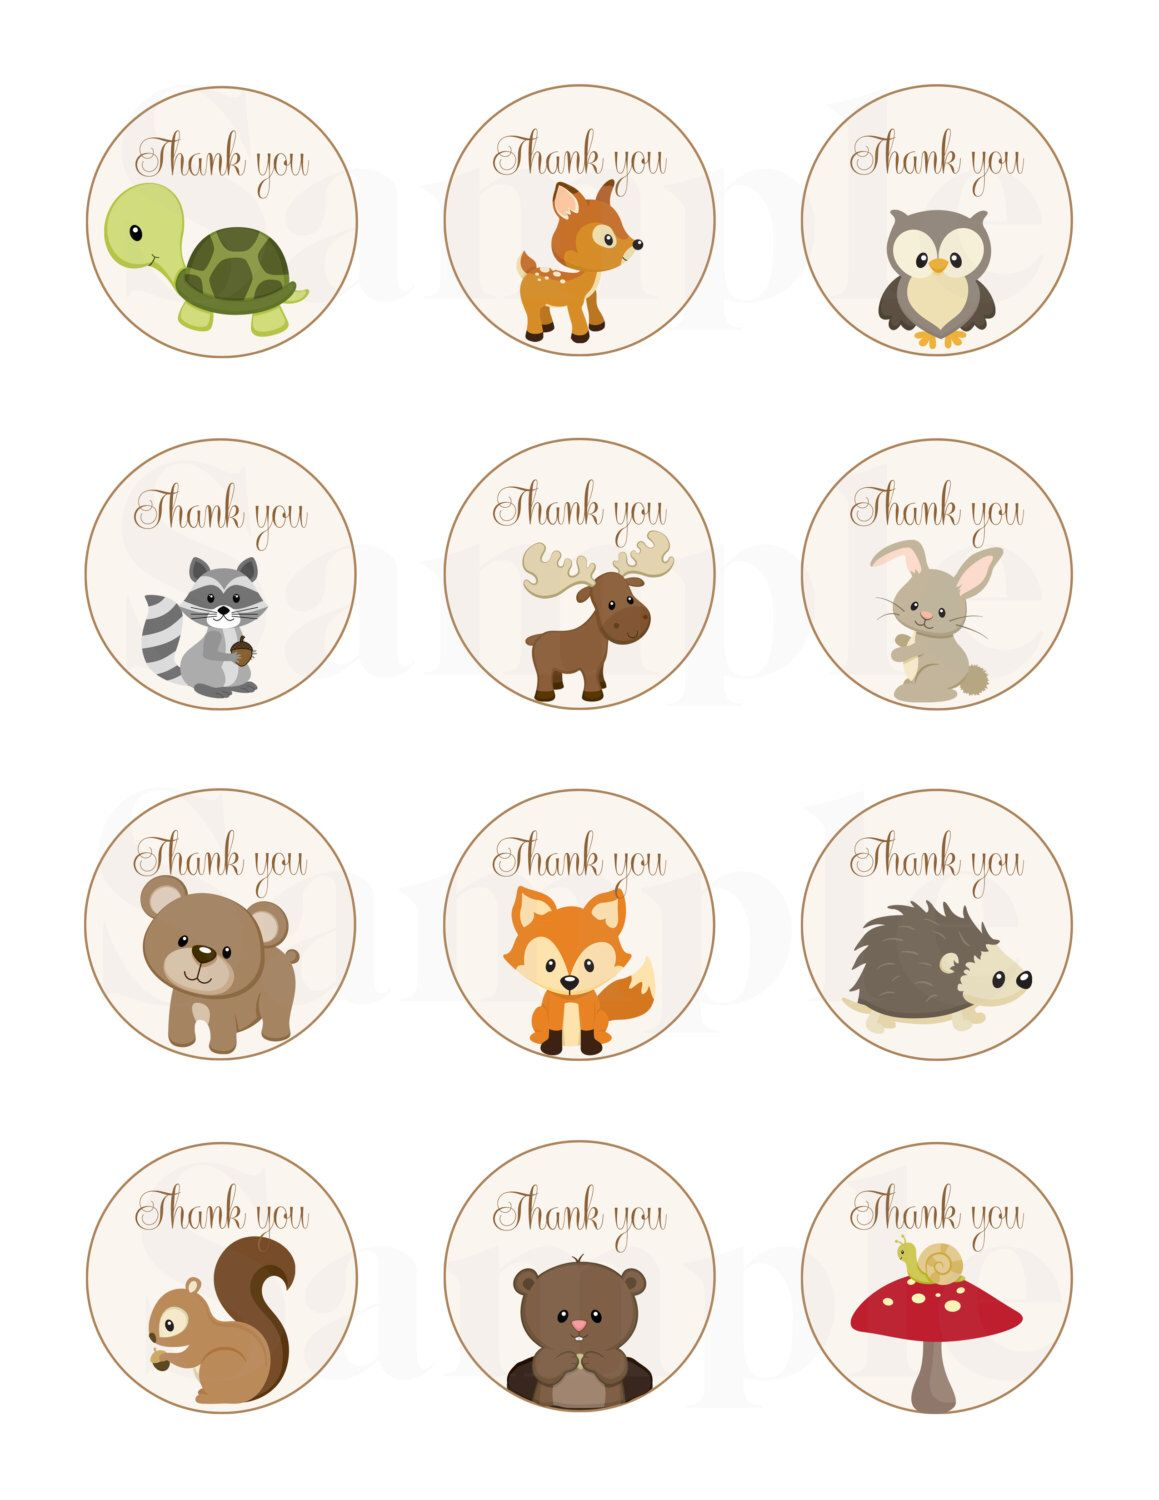 Pin By Liz Moore On Baby Shower Ideas In